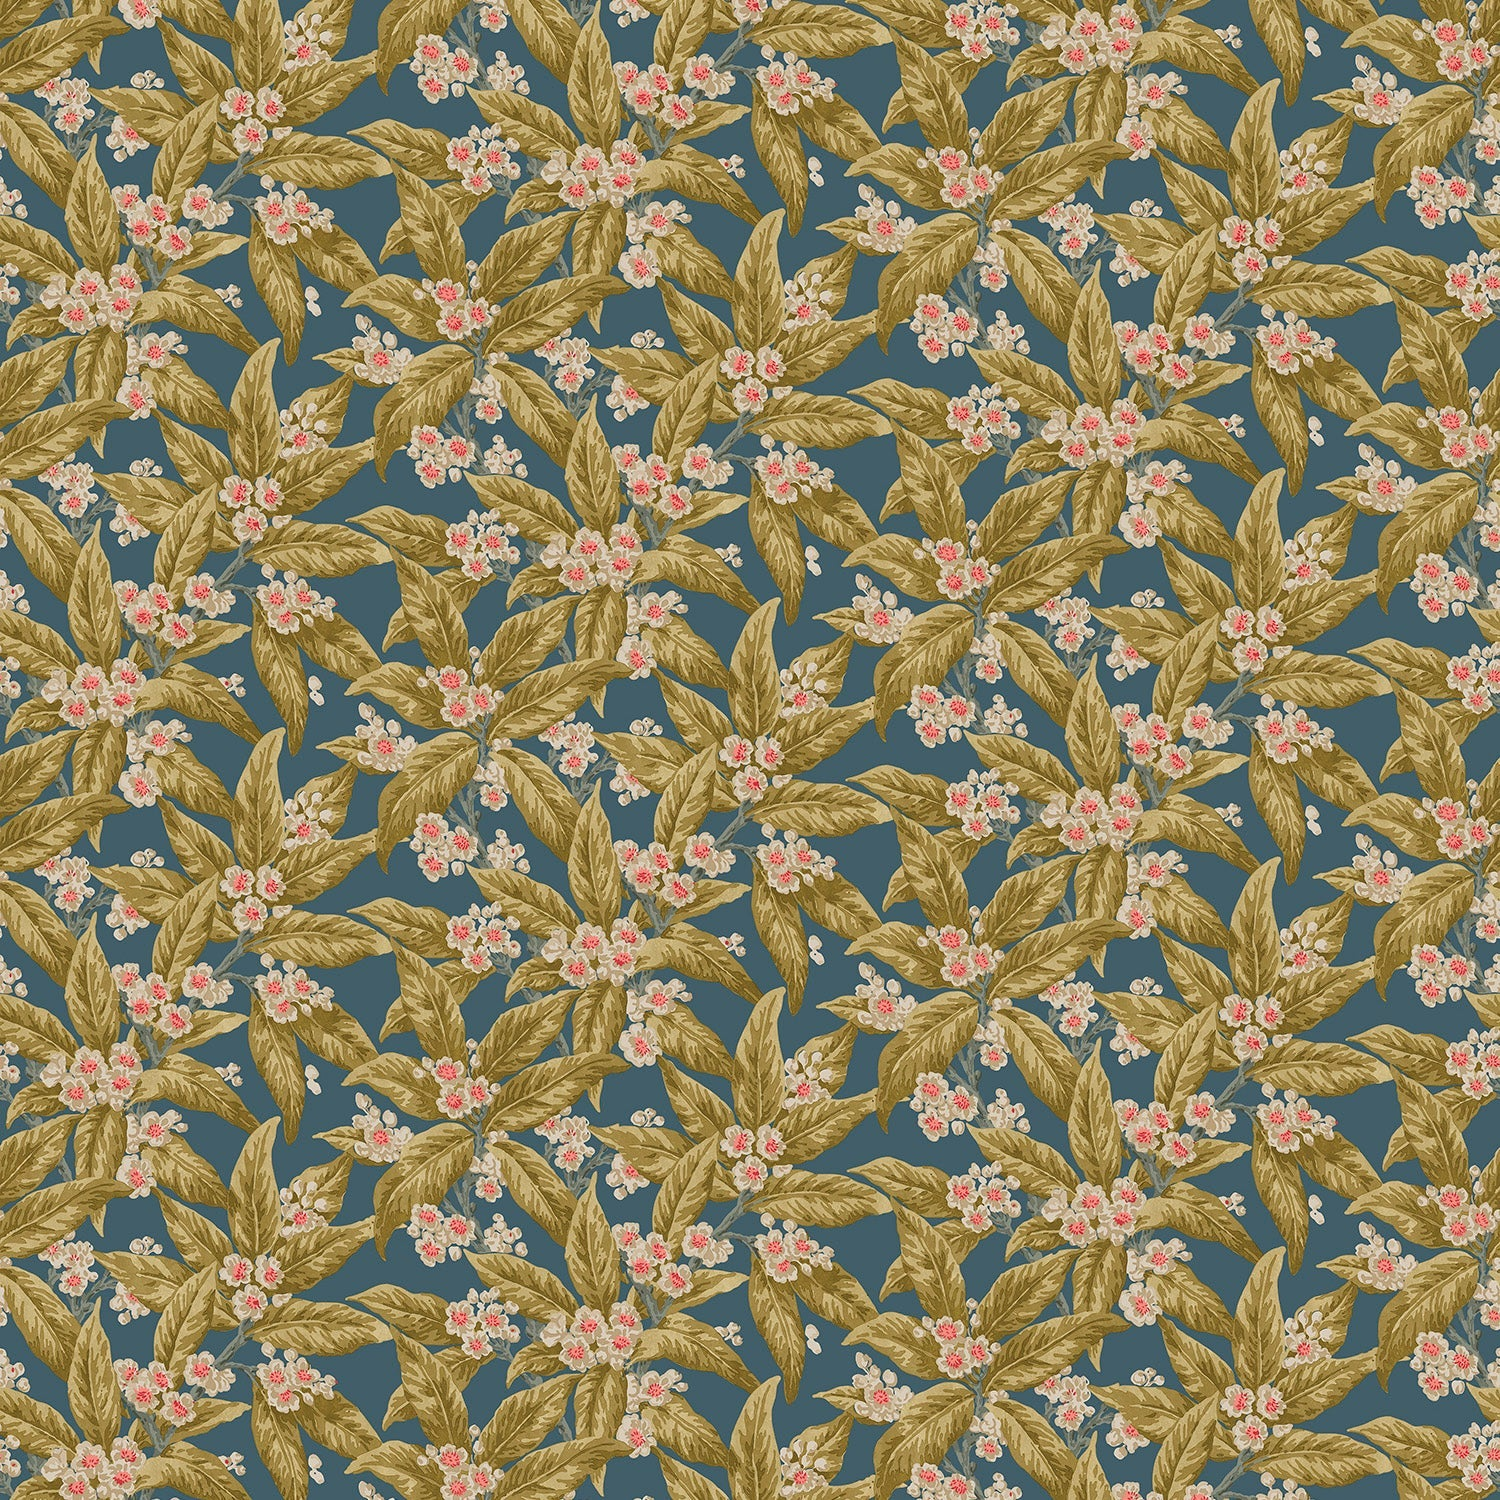 Fabric swatch of a dark blue velvet fabric with ochre leaves and pretty flowers, suitable for curtains and upholstery and with a stain resistant finish